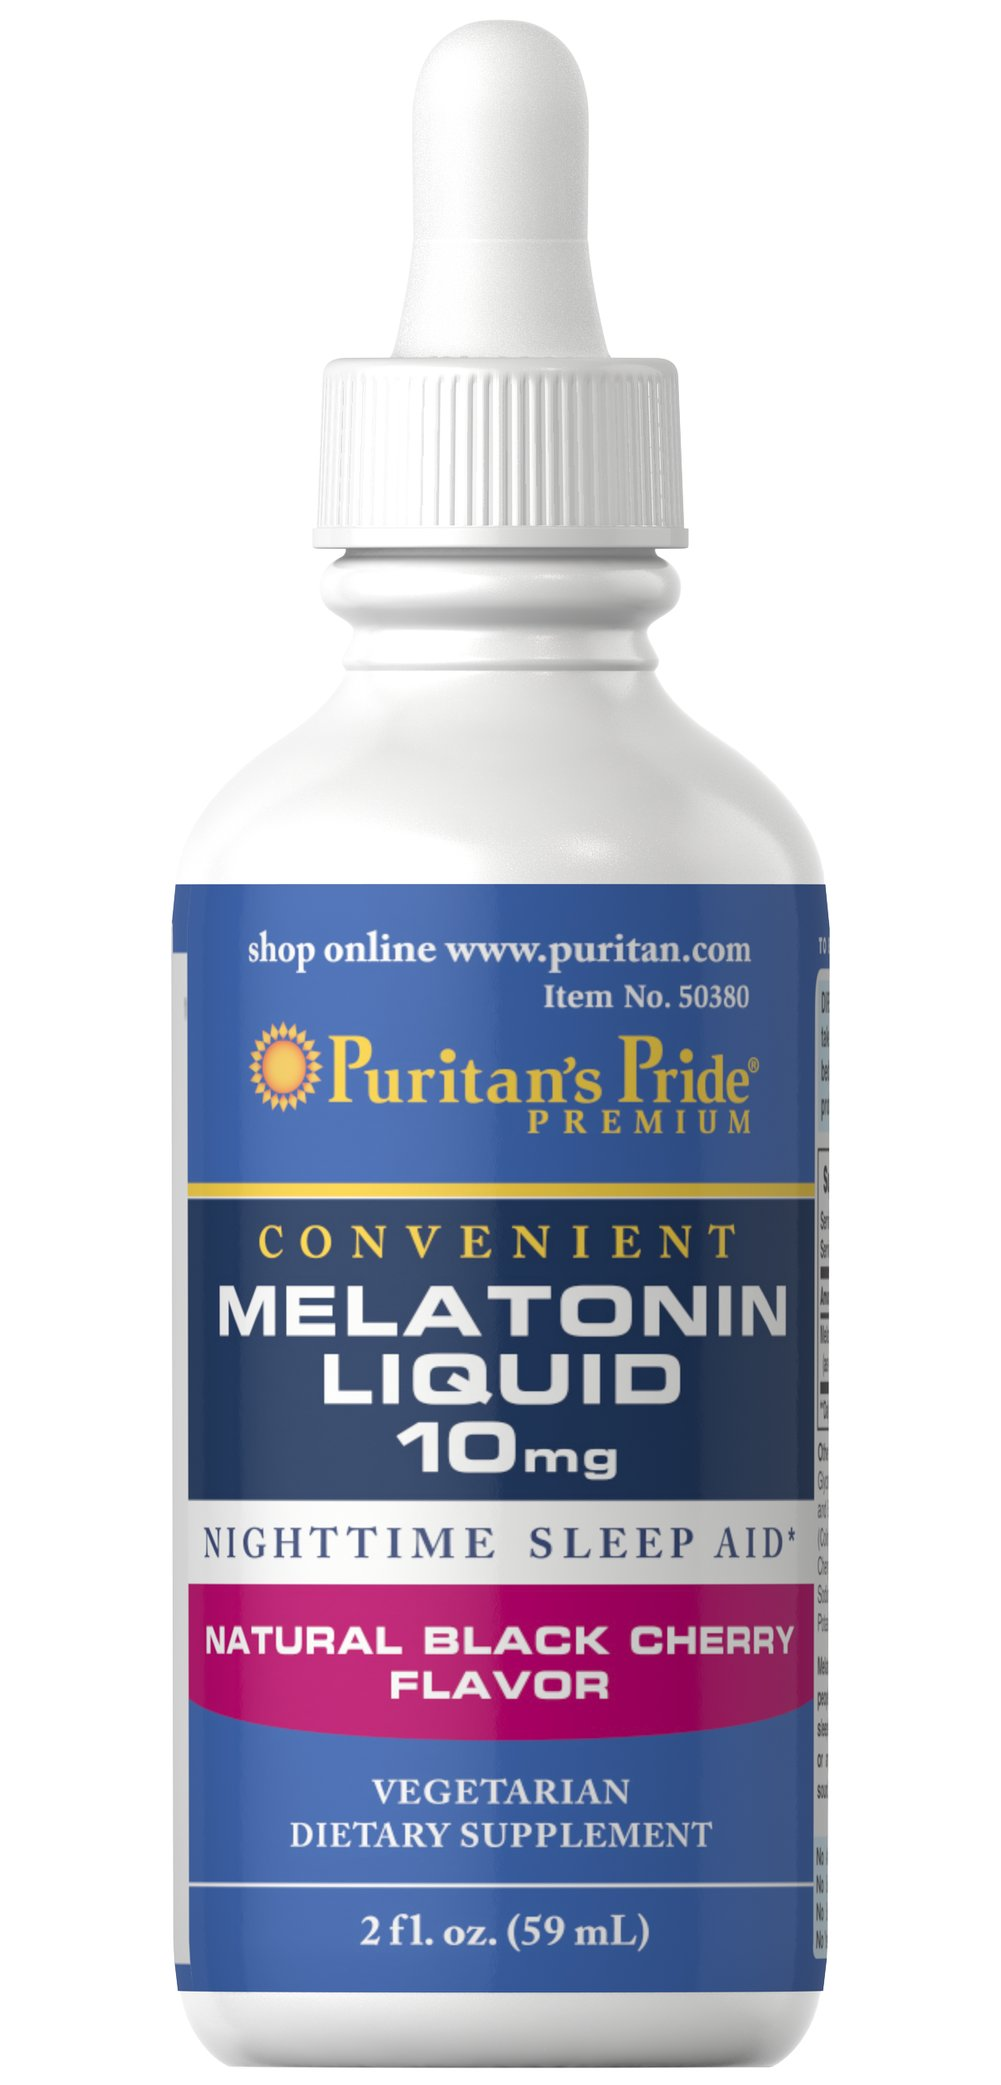 "Melatonin Black Cherry Liquid 10 mg <ul><li><span style=""font-family:'Arial','sans-serif';color:black;"">Nighttime sleep aid.**</span></li><li><span style=""font-family:'Arial','sans-serif';color:black;"">Fast-acting vegetarian liquid formula.</span></li><li><span style=""font-family:'Arial','sans-serif';color:black;"">Delicious natural black cherry flavor.&l"